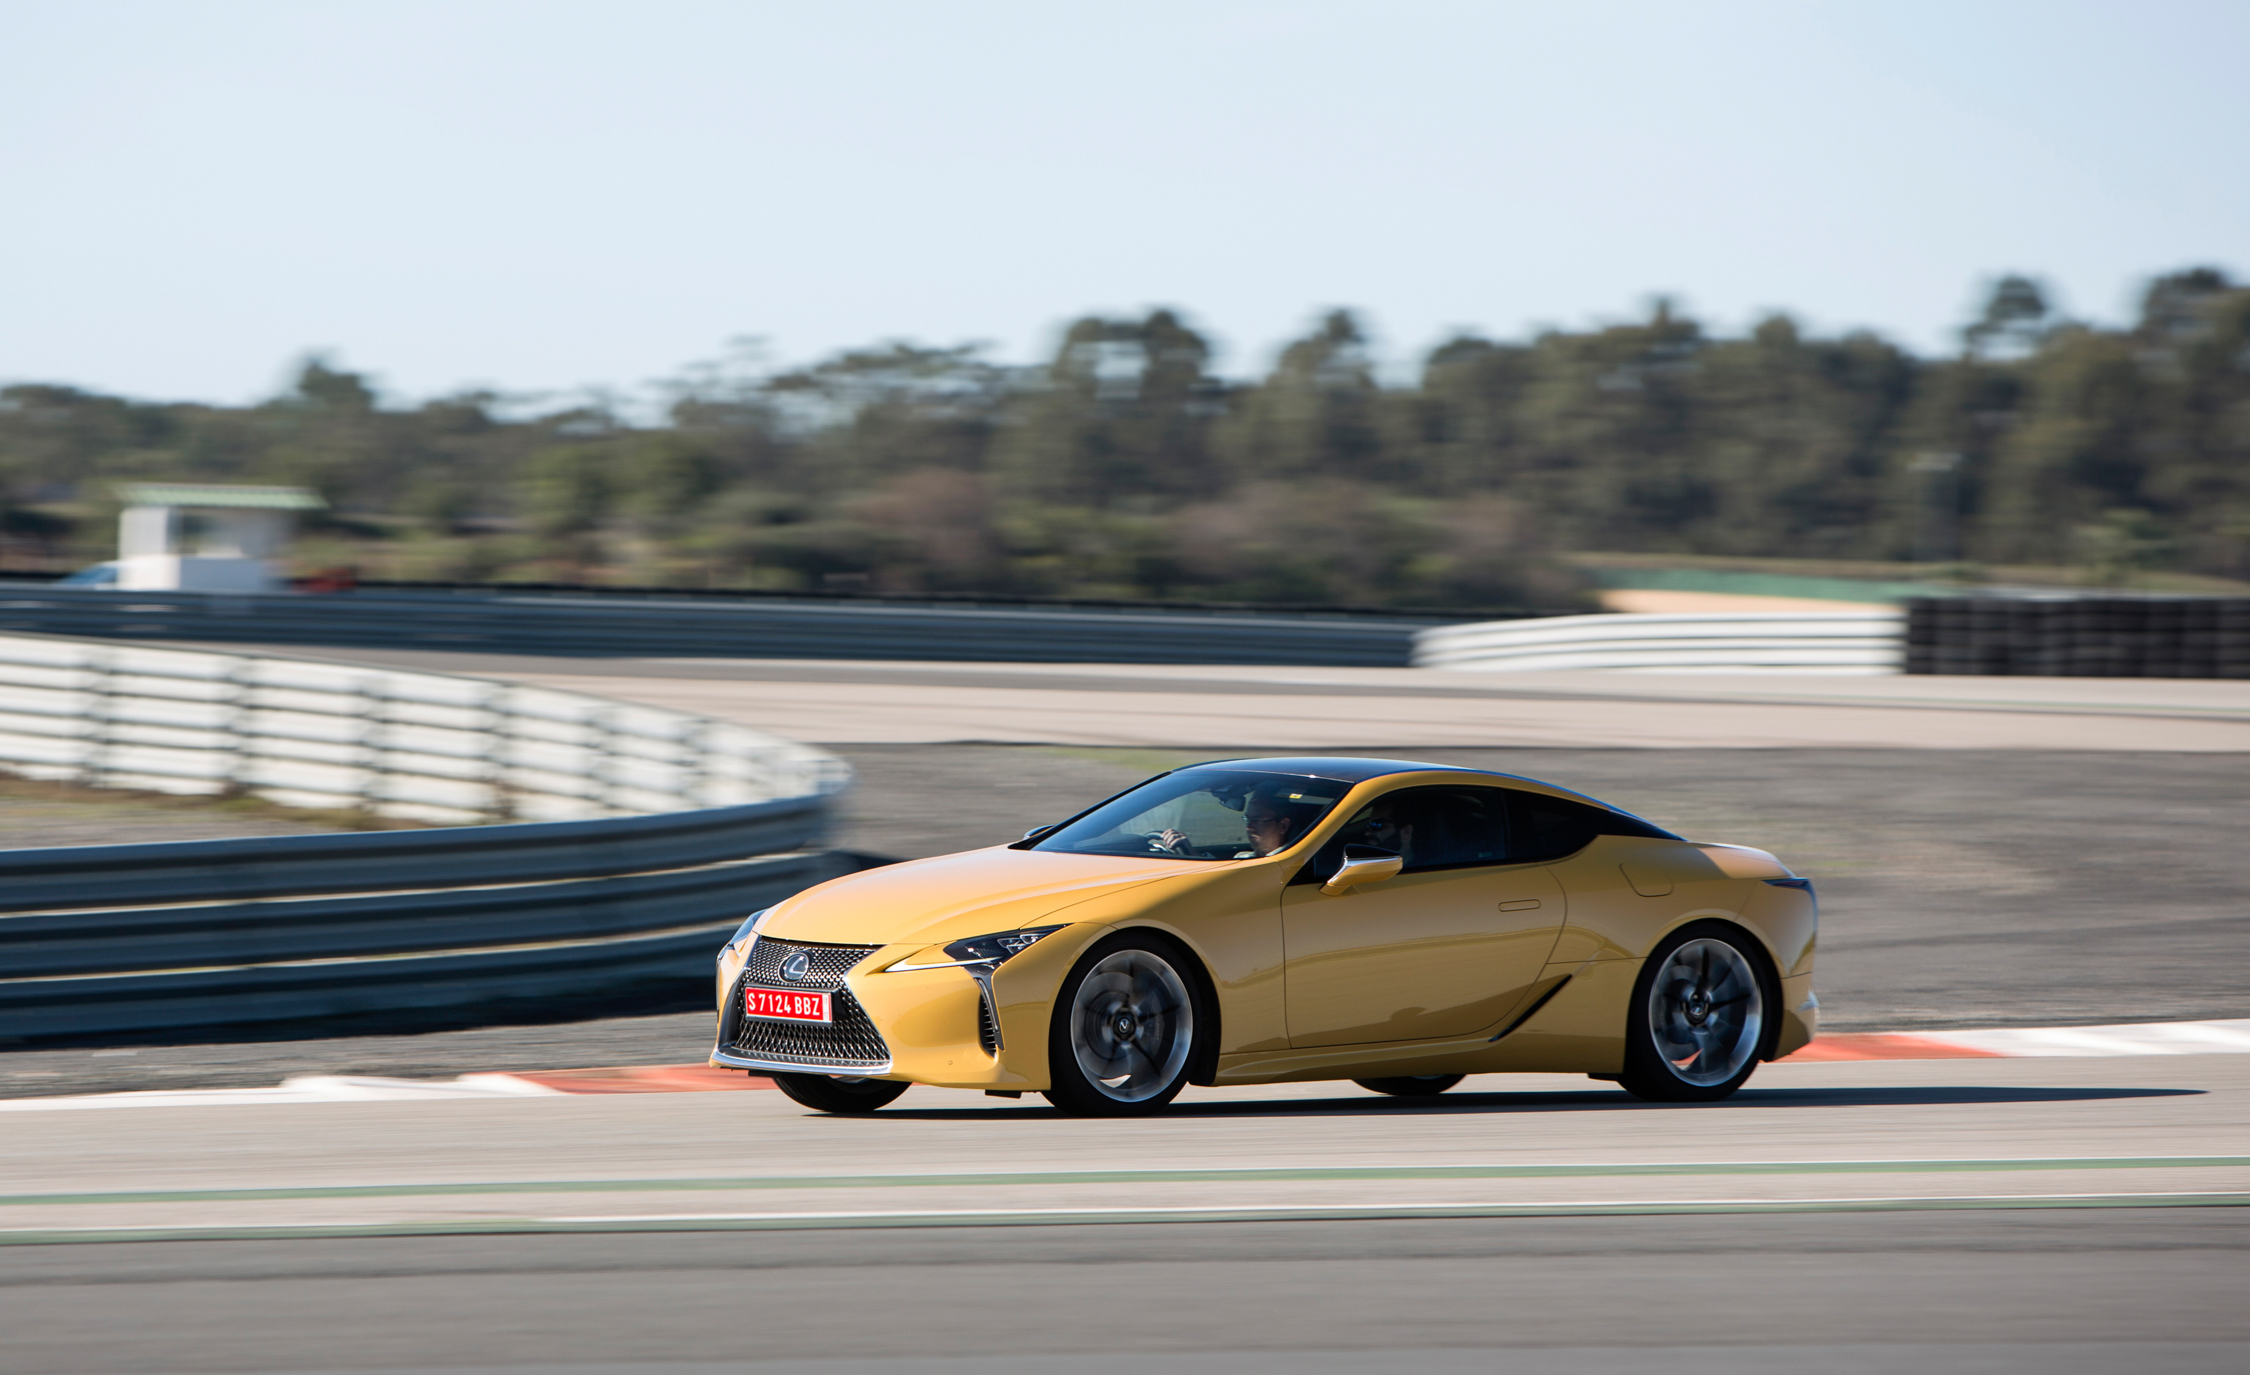 2018 Lexus Lc 500 Performance Side And Front View (View 22 of 84)